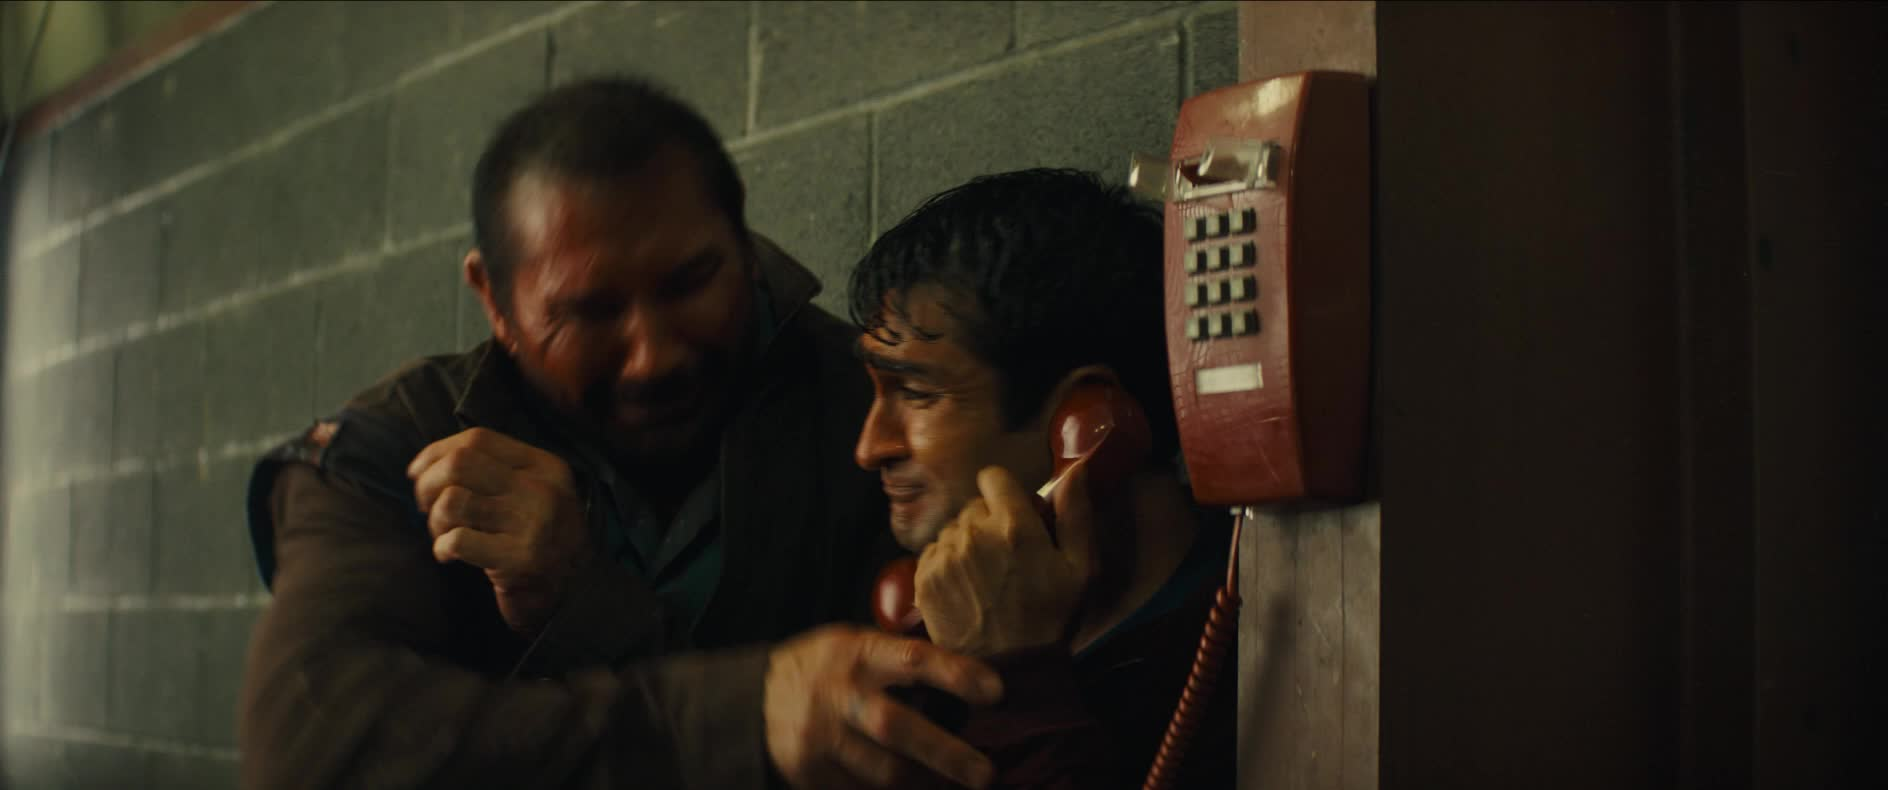 dave bautista, kumail nanjiani, ok, phone, stop, stuber, stuber movie, telephone, Give Me The Phone GIFs